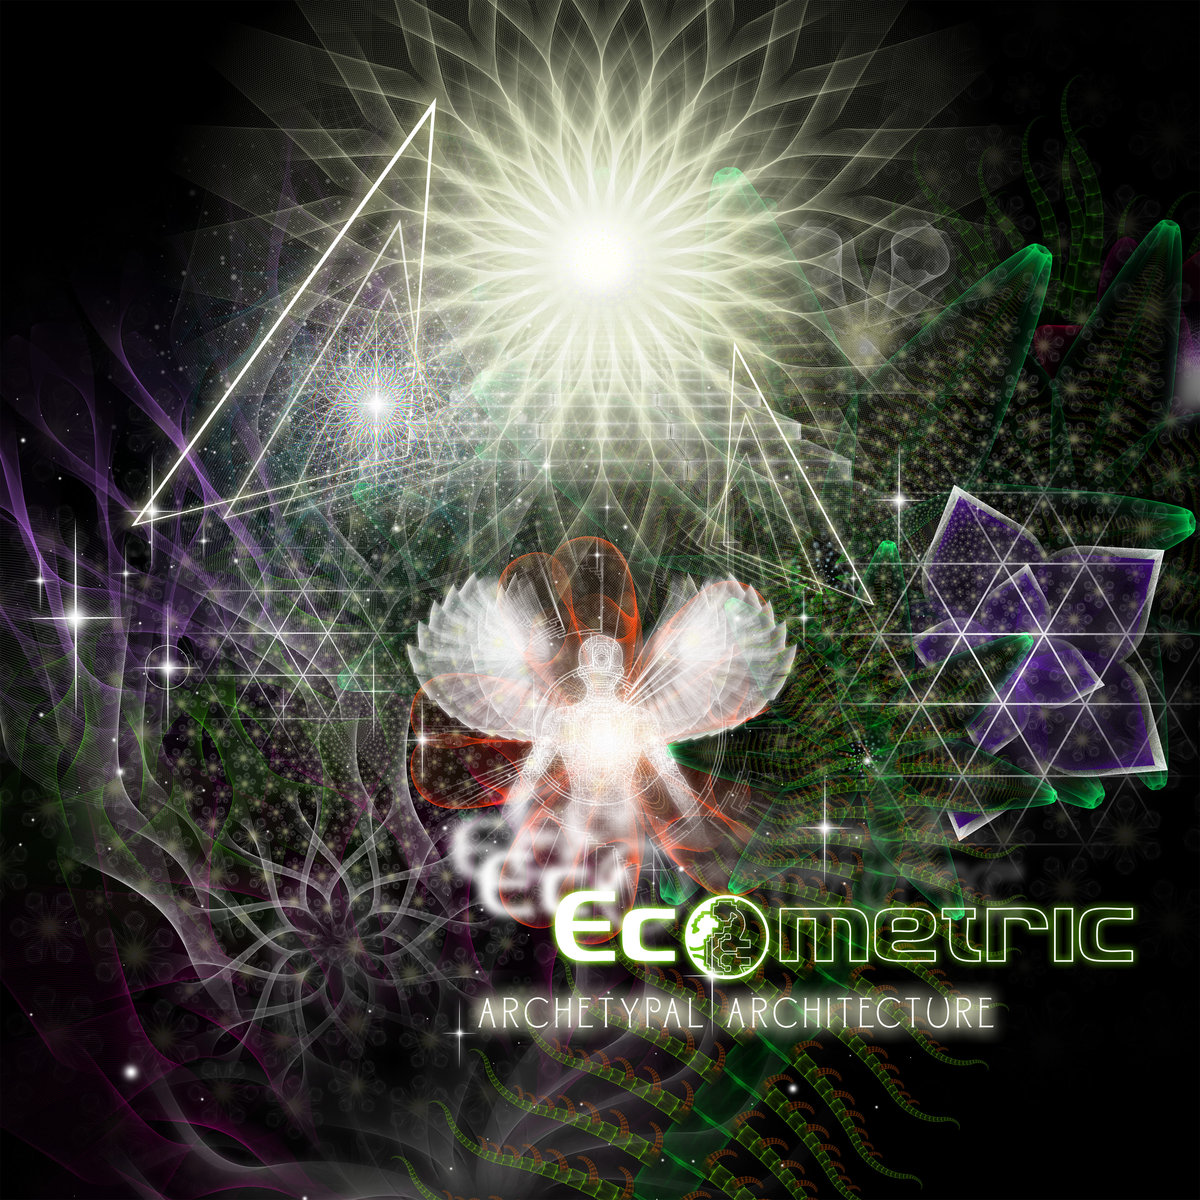 Ecometric - Blackberry (Kalya Scintilla's Burnt Caramel Remix) @ 'Archetypal Architecture' album (424hz, electronic)